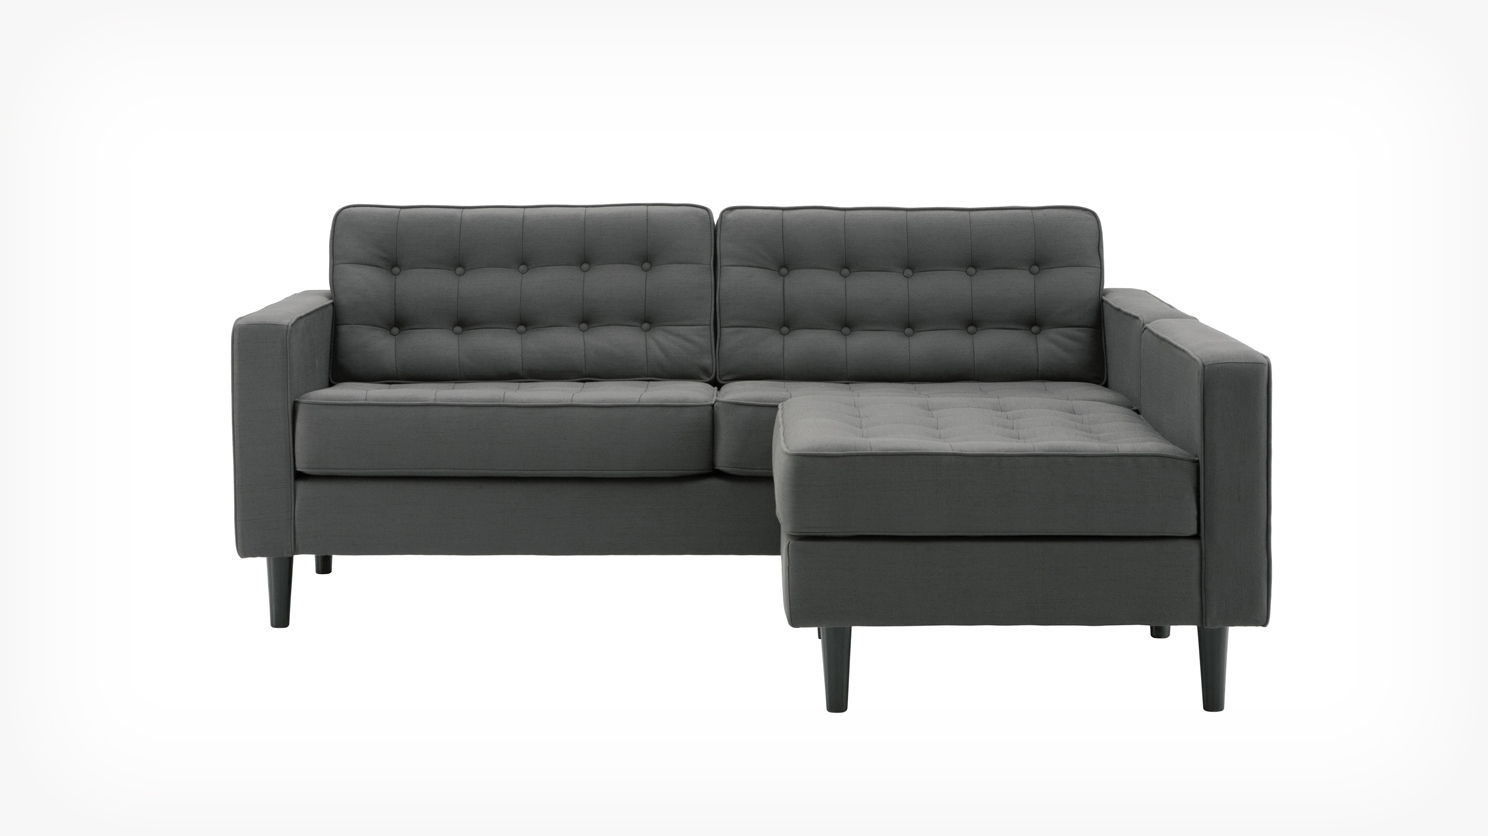 Eq3 | Reverie Apartment 2 Piece Sectional Sofa With Chaise   Fabric With Eq3 Sectional Sofas (Photo 2 of 10)